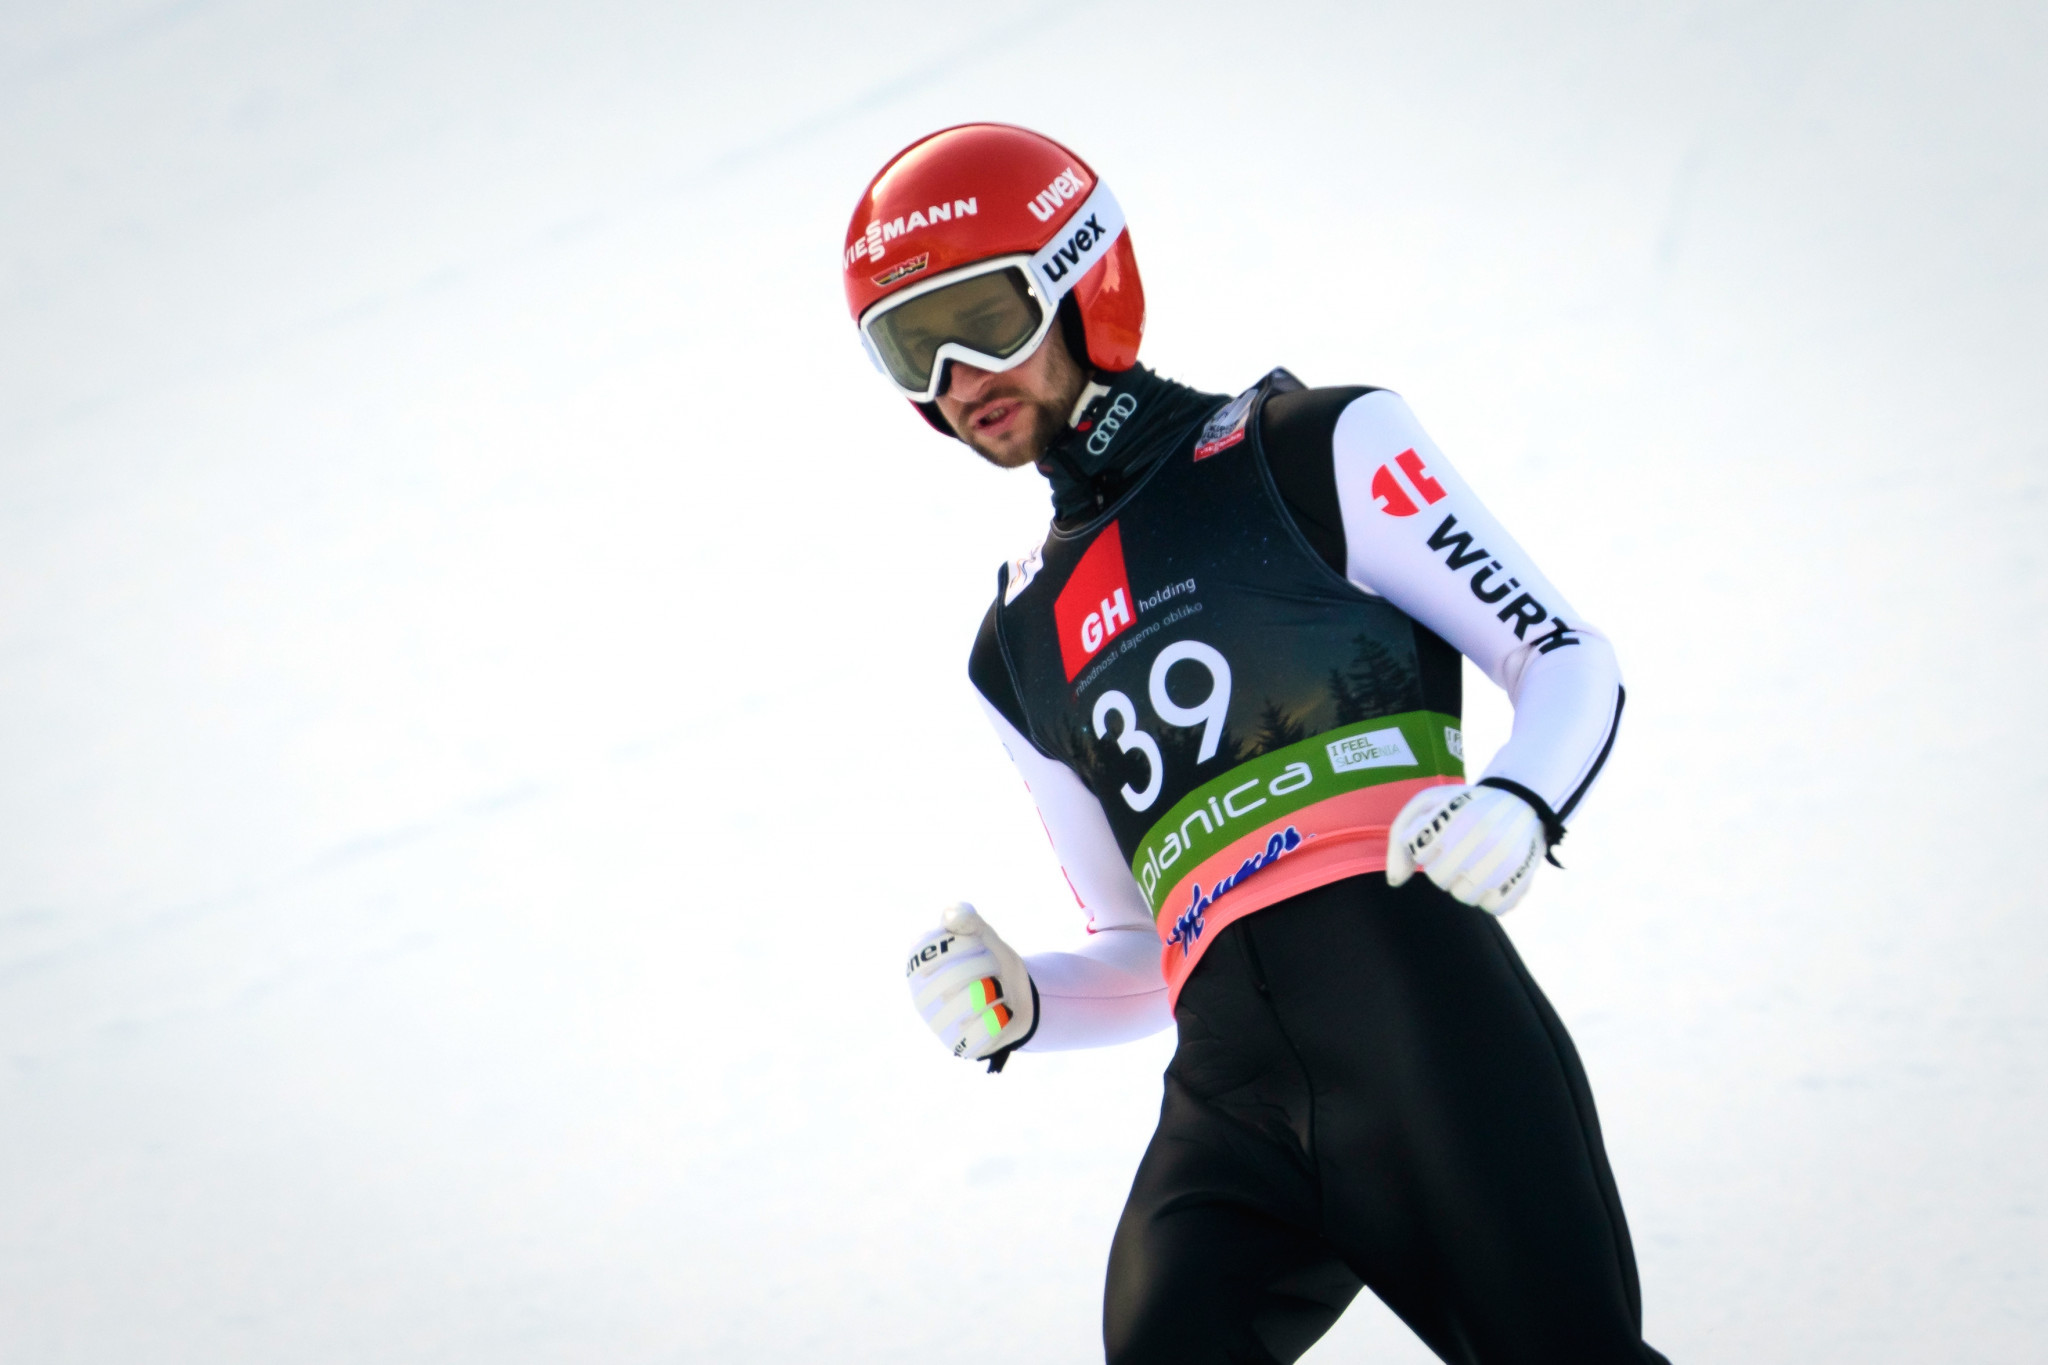 Eisenbichler wins opening event of season-ending Ski Jumping World Cup in Planica